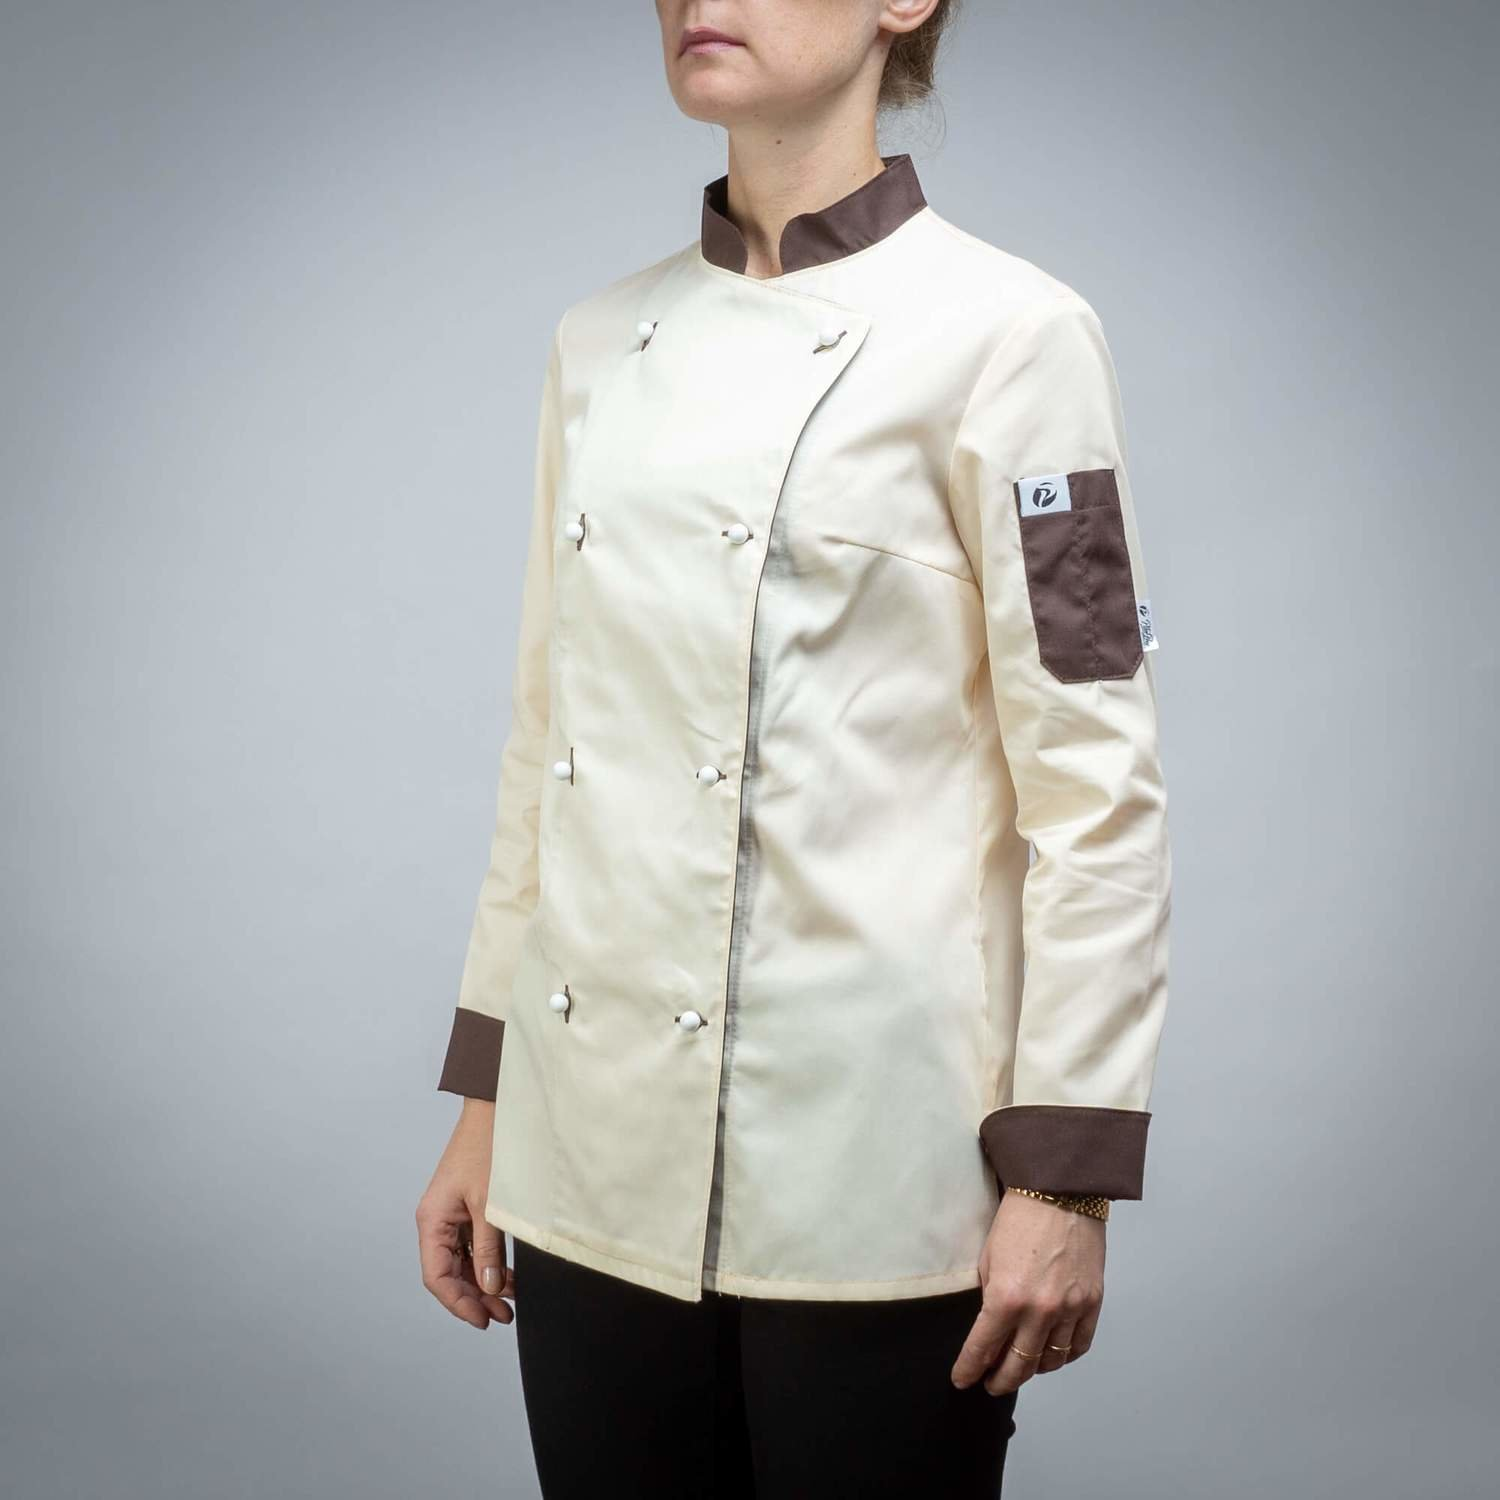 501CREAM3 - CHEF'S JACKET